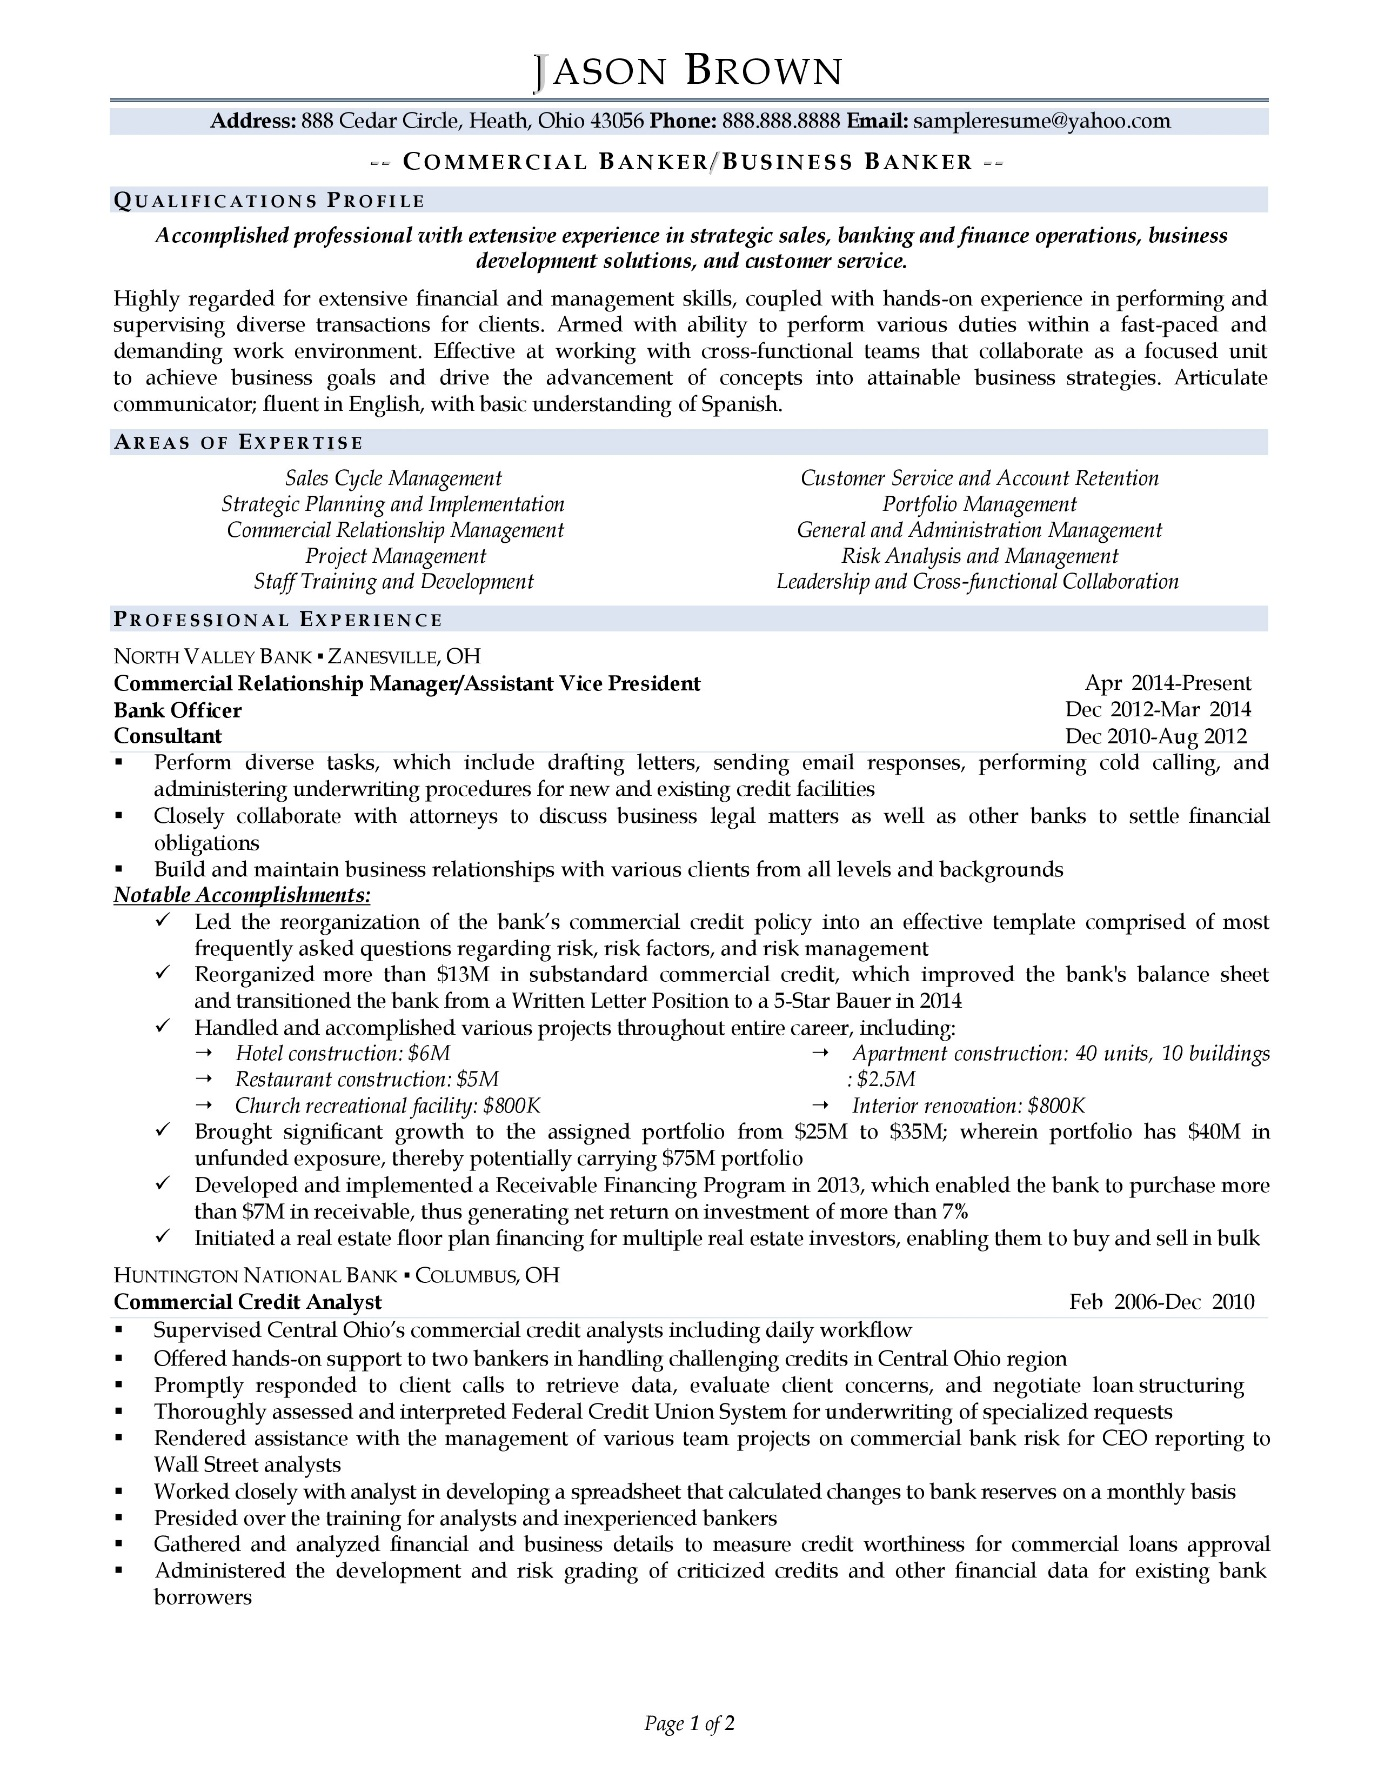 Business banker resume sample with light color accents page 1